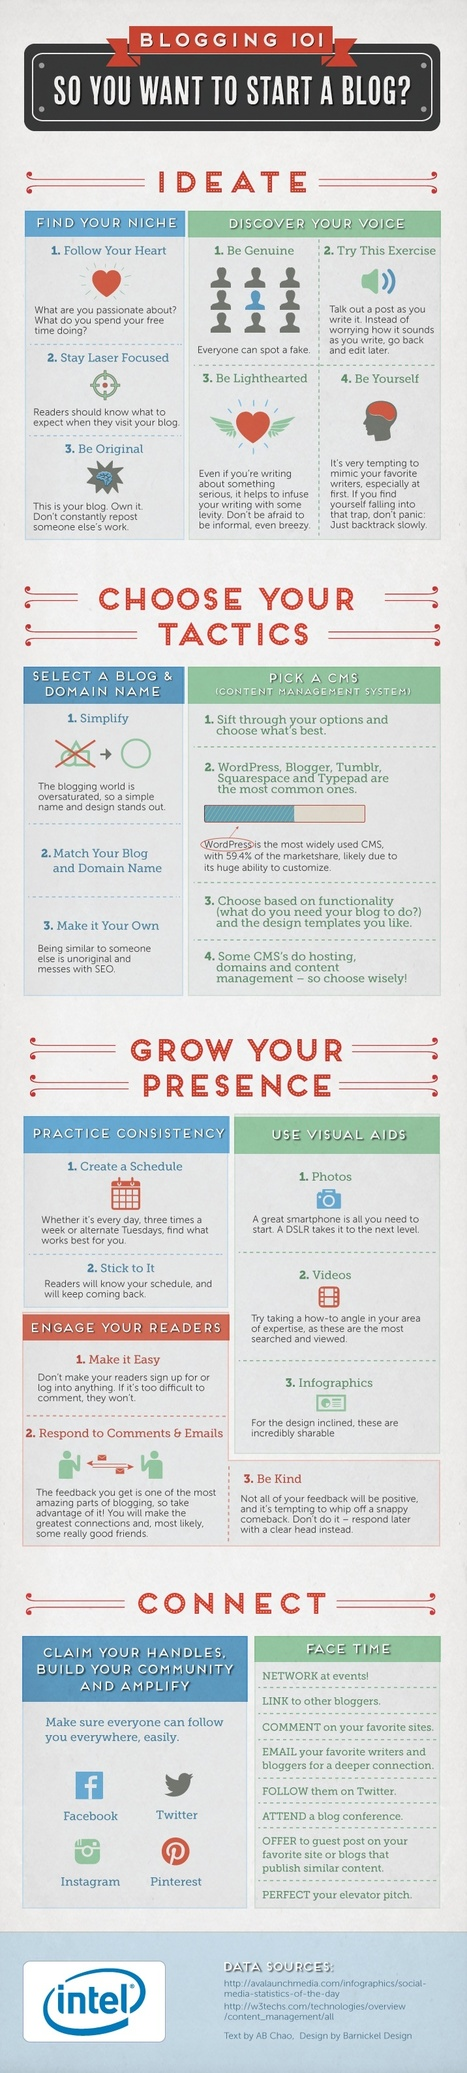 So You Want To Start A Blog? (Infographic) | Market to real people | Scoop.it